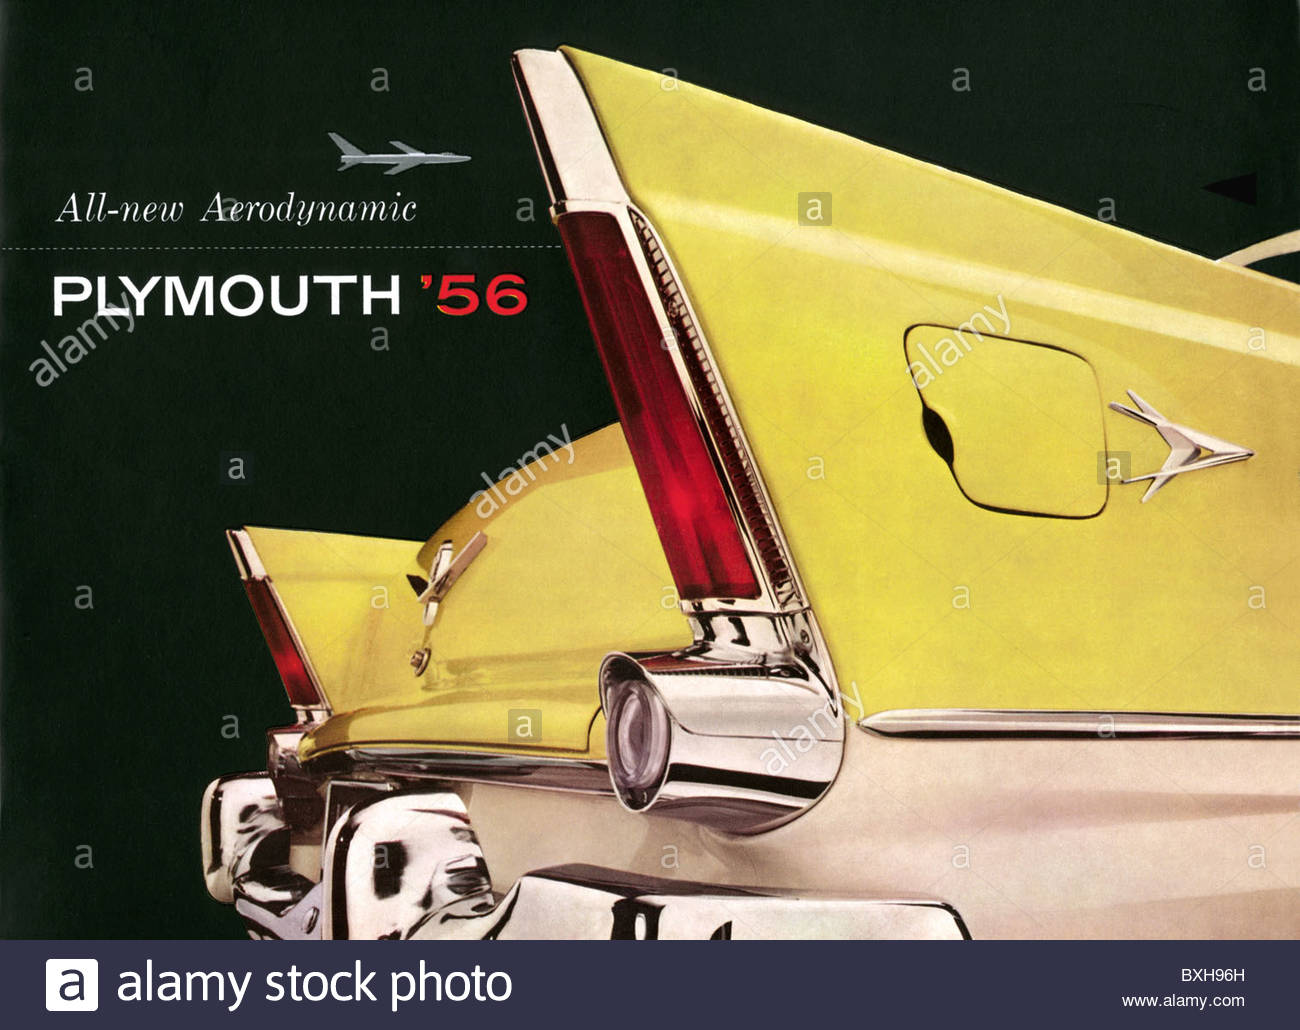 Hooniverse Asks What Car Had Best Tail Fins besides Wildwood as well 1953 Chevrolet Corvette With Bubble Hardtop Featuring A Nasty Surprise moreover Thunderbird Car moreover Stock Photo Advertising Car Tail Fin American Road Cruiser Brochure Front Page 33571849. on 1950s cars with big fins